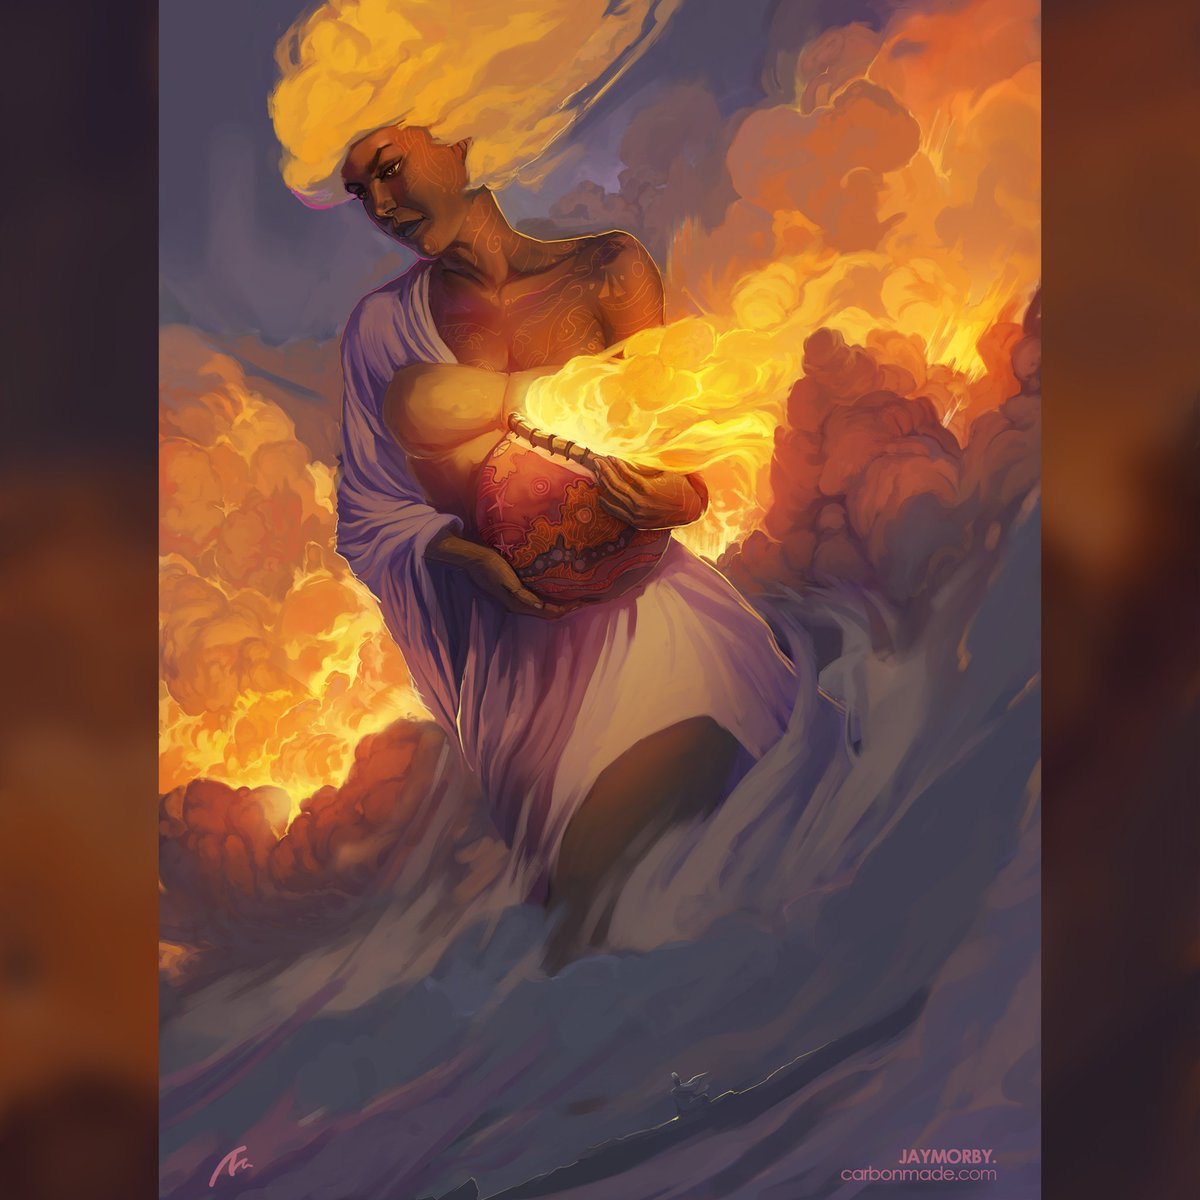 &quot;She brought Dawn&quot;  | | This Ember is dedicated to those who've brought a new kind of light to the world of another. And if both parties did so, that&#39;s just the best!  #WeAreNigerianCreatives #fantasyart #ValentinesDay <br>http://pic.twitter.com/Zvv6UDa9QH